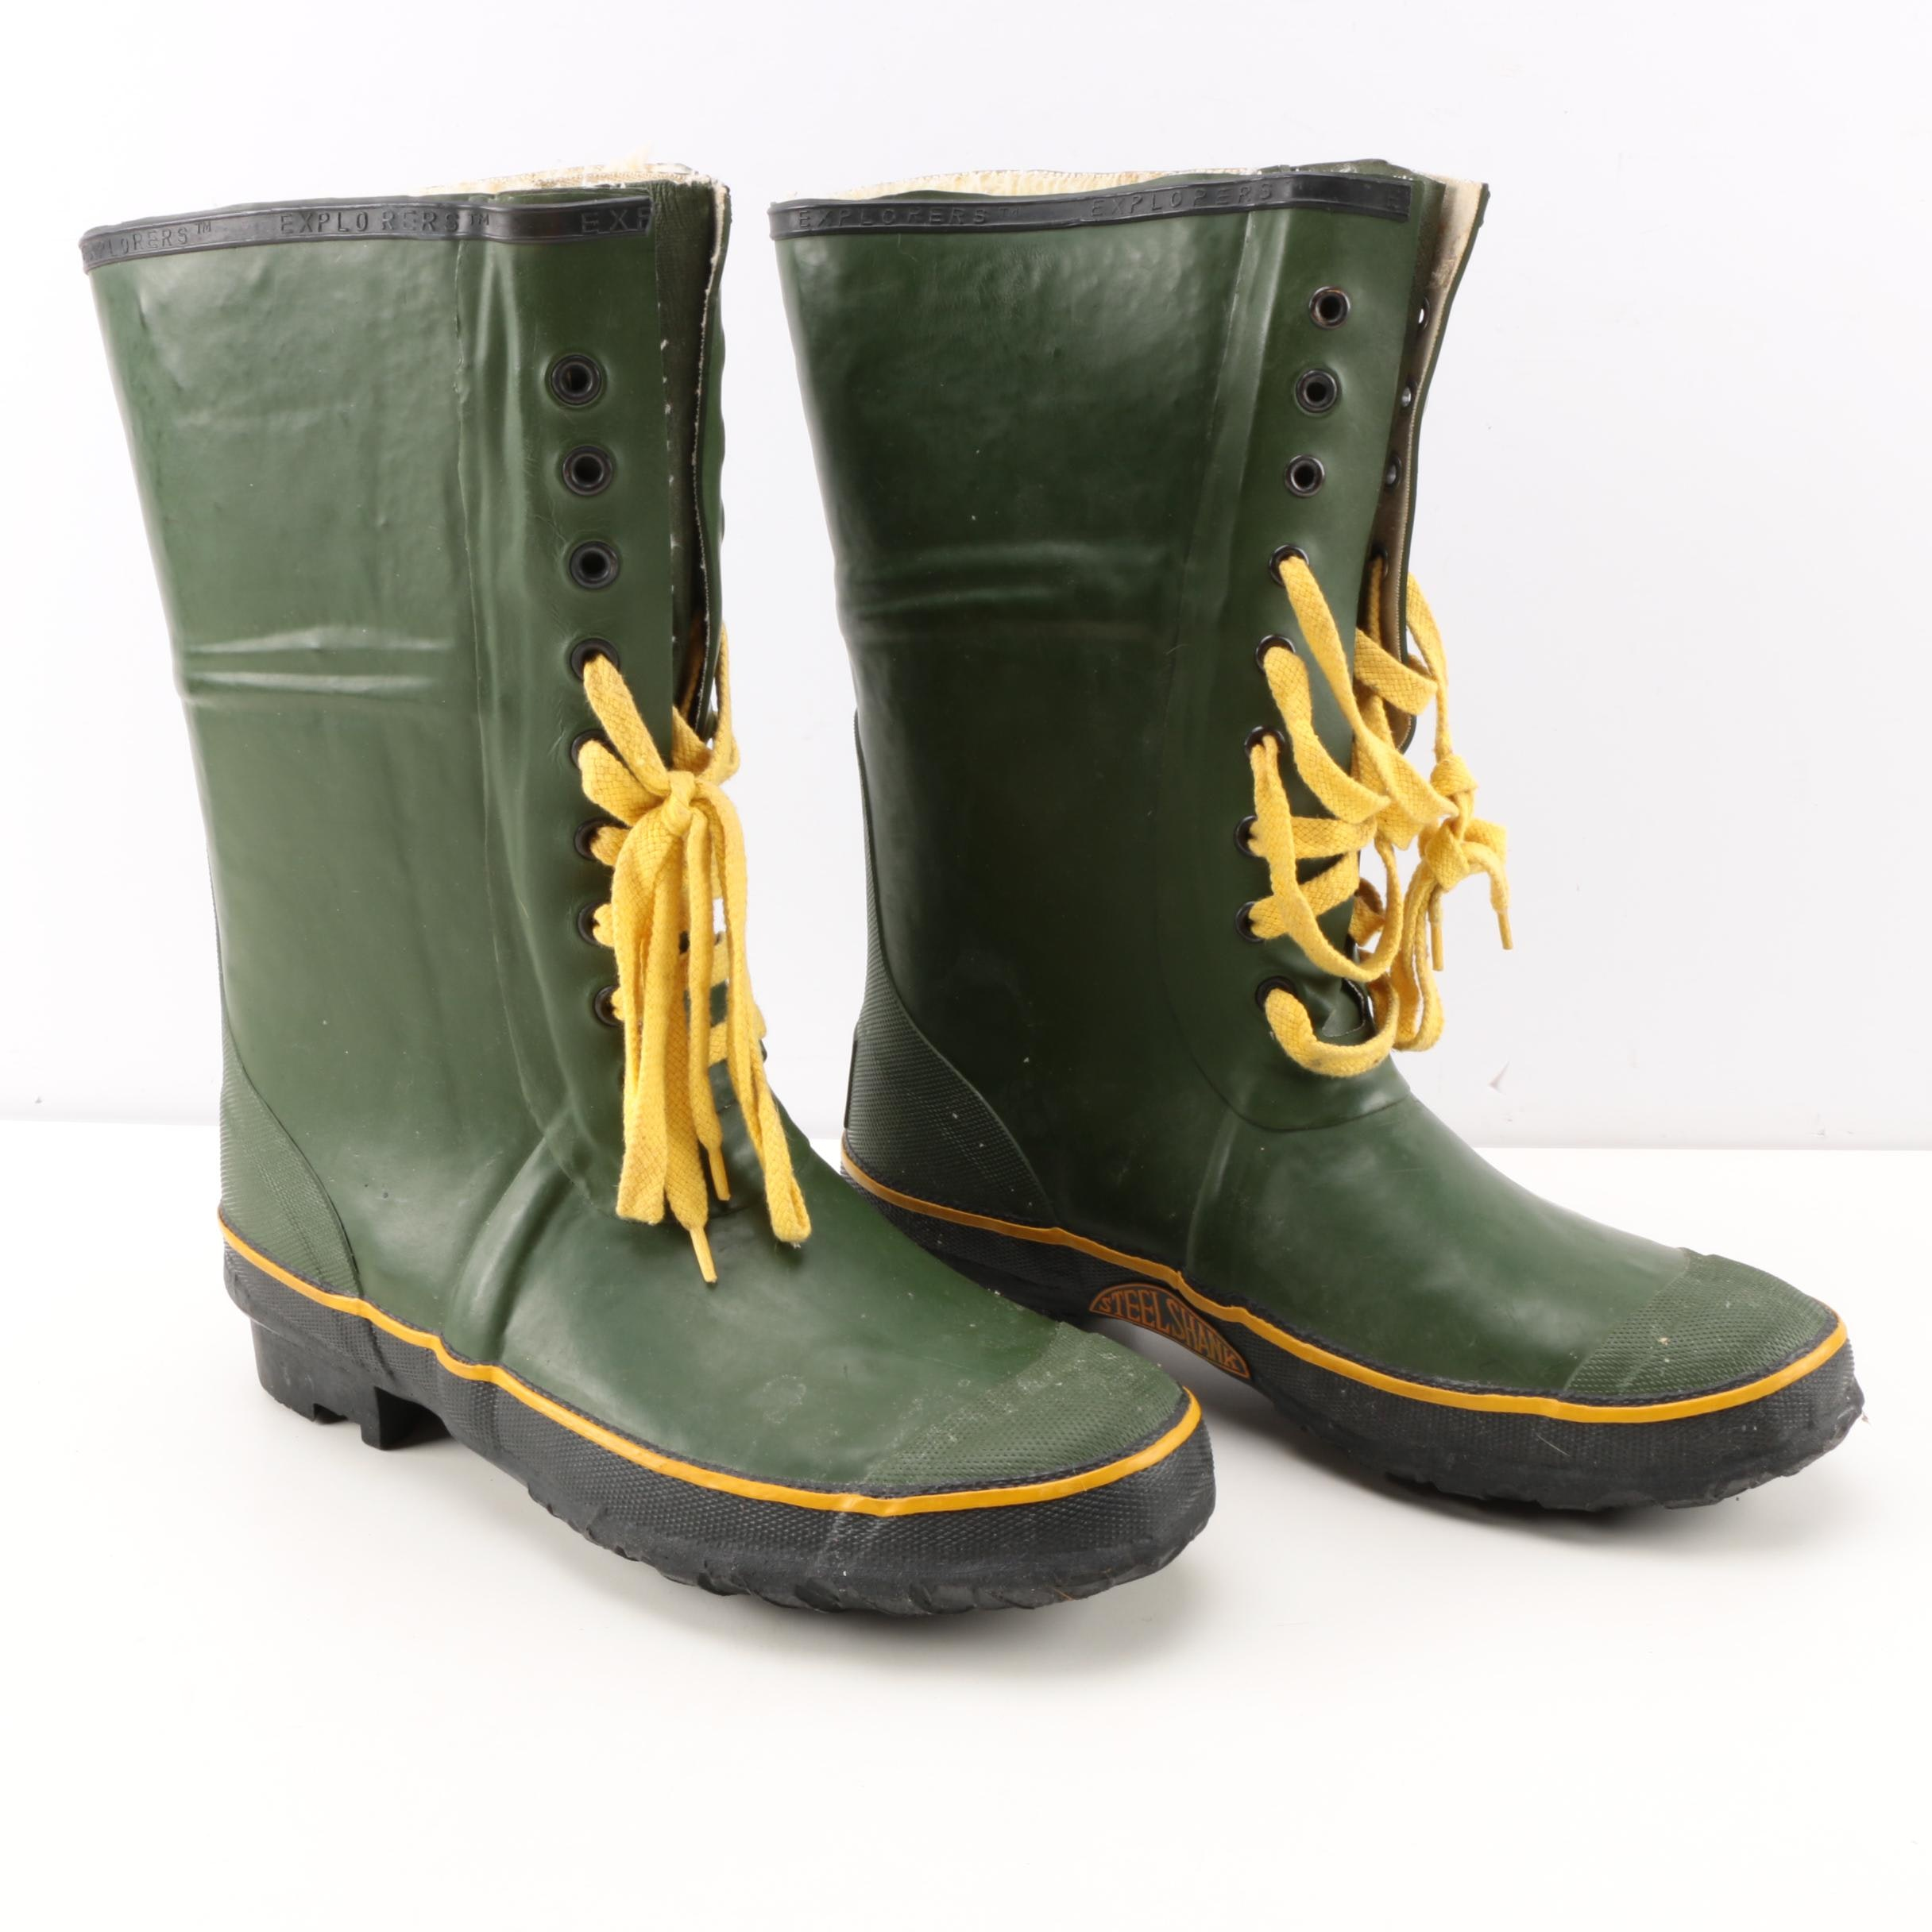 Women's Explorers All Weather Boots